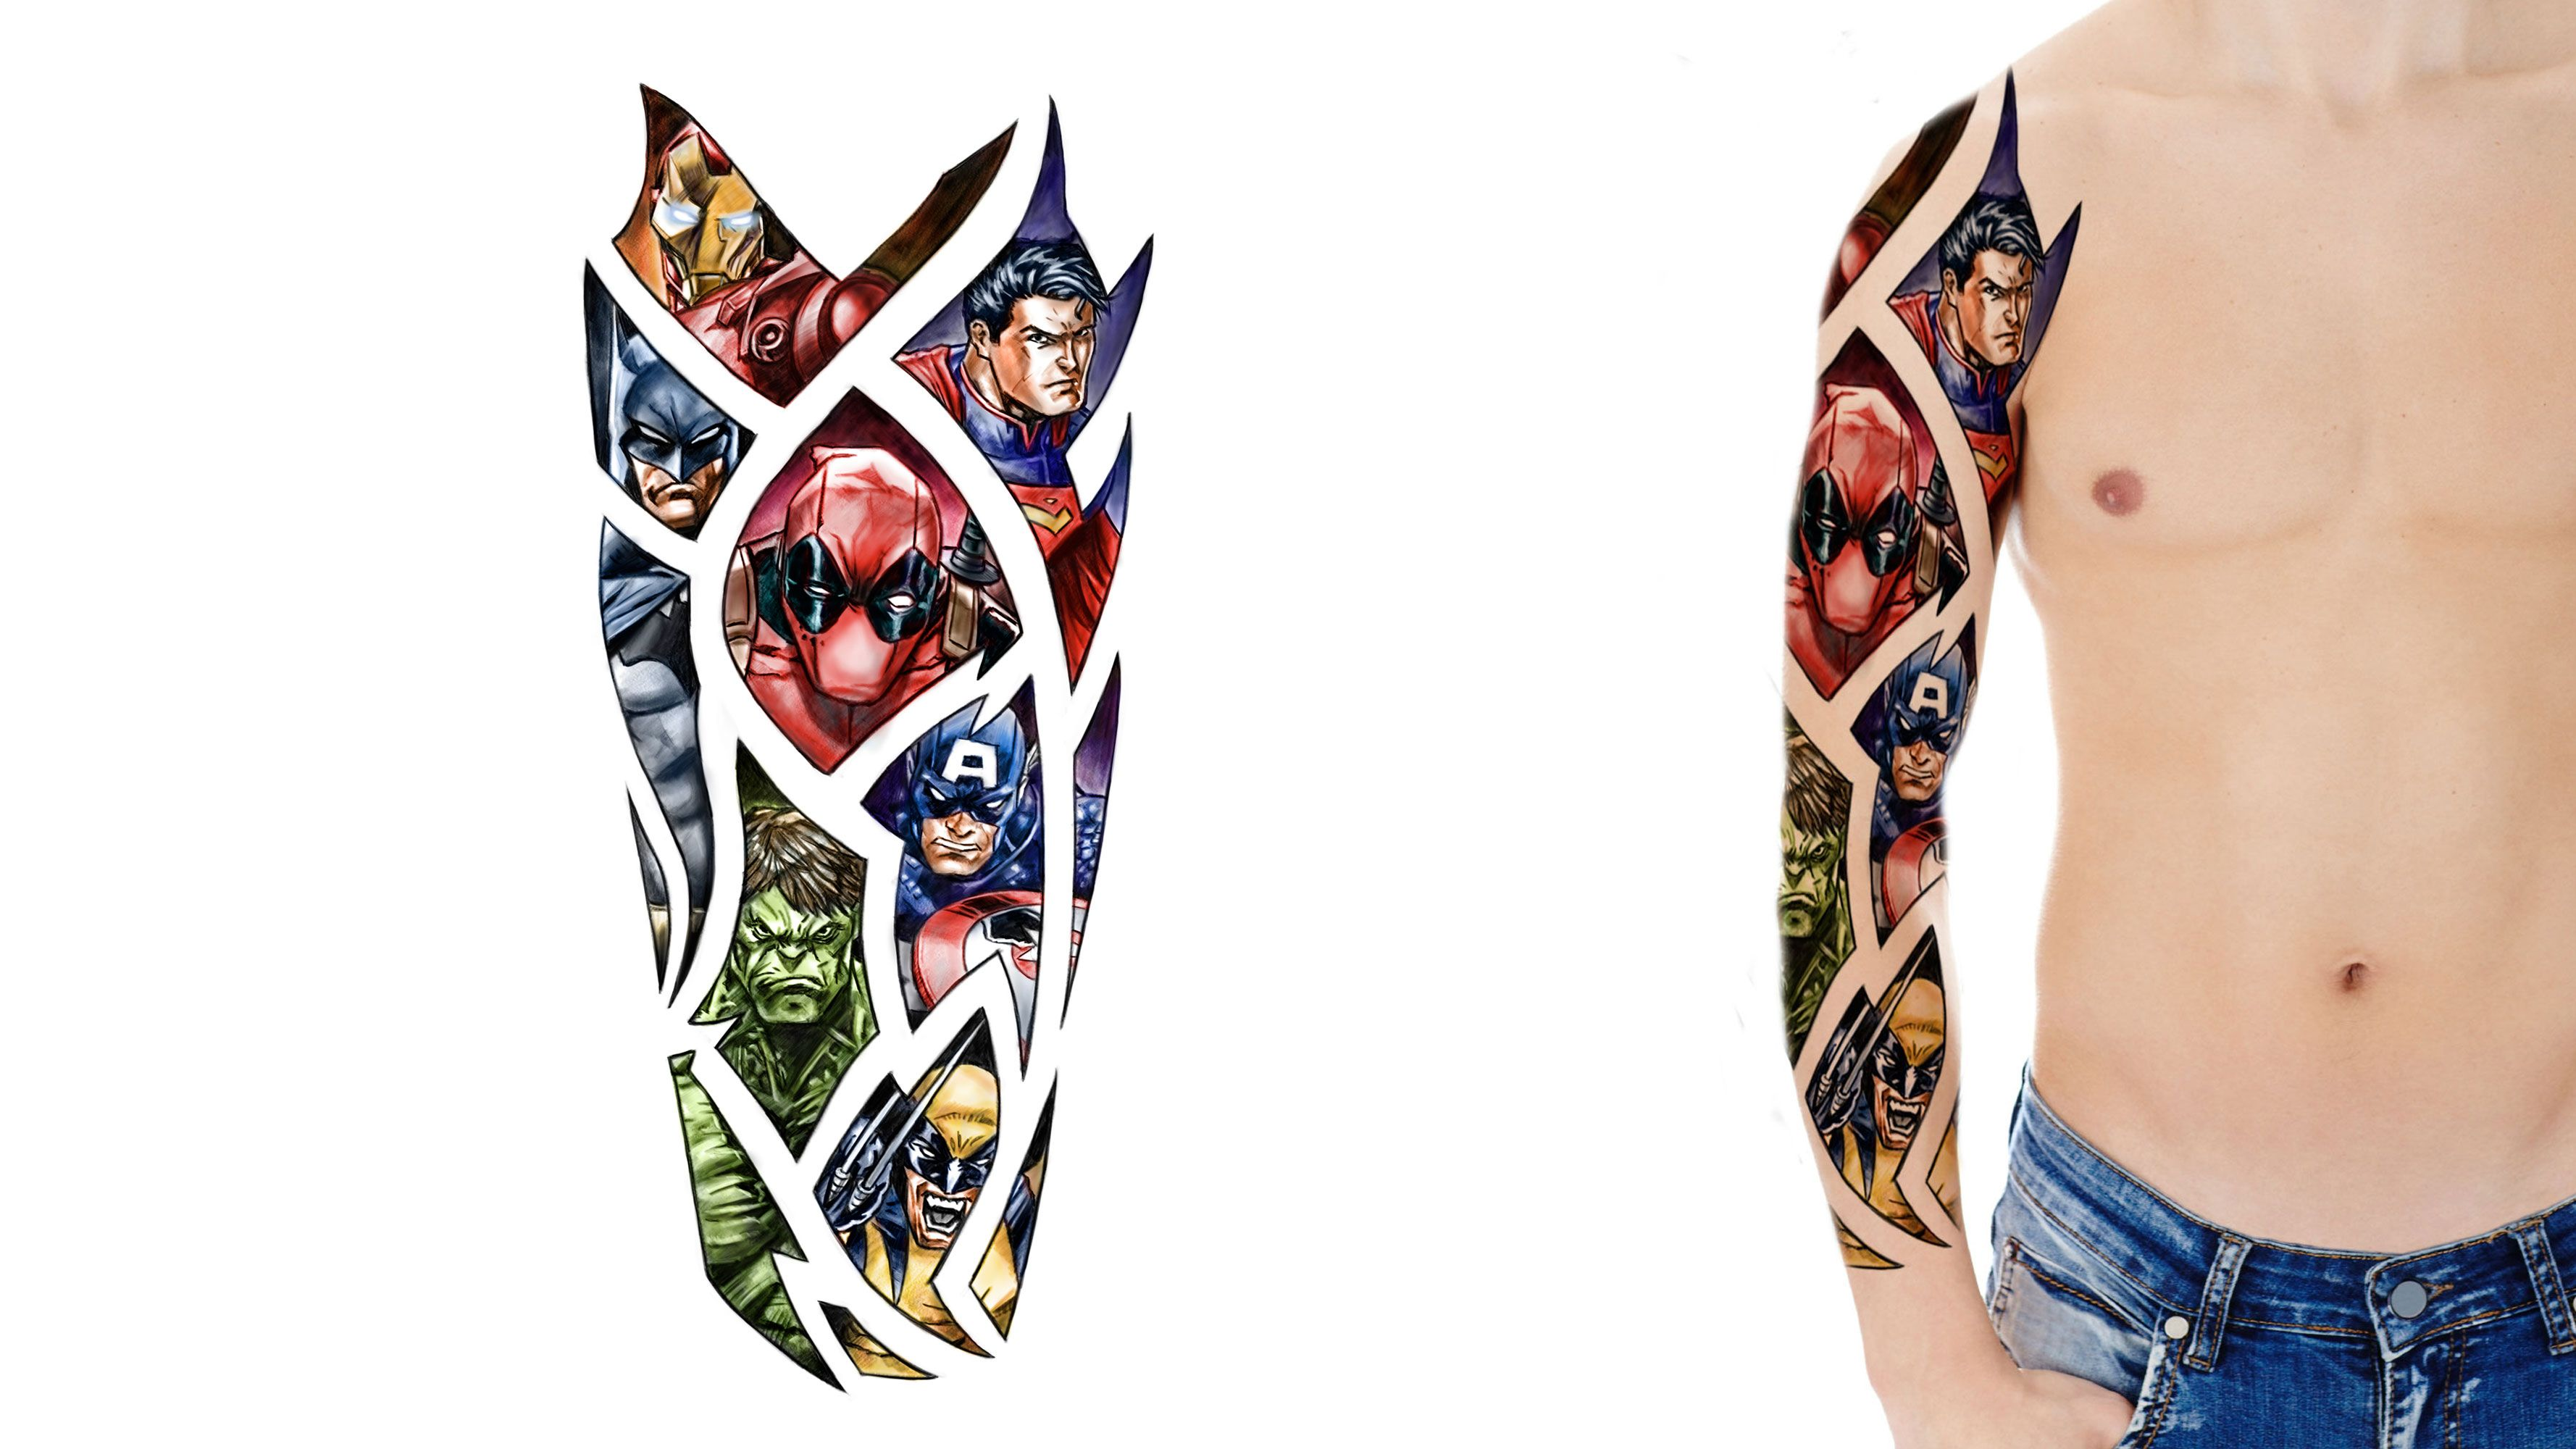 Tattoo Designs Gallery Of Artwork And Videos Marvel Tattoos Sleeve Tattoos Tattoo Designs